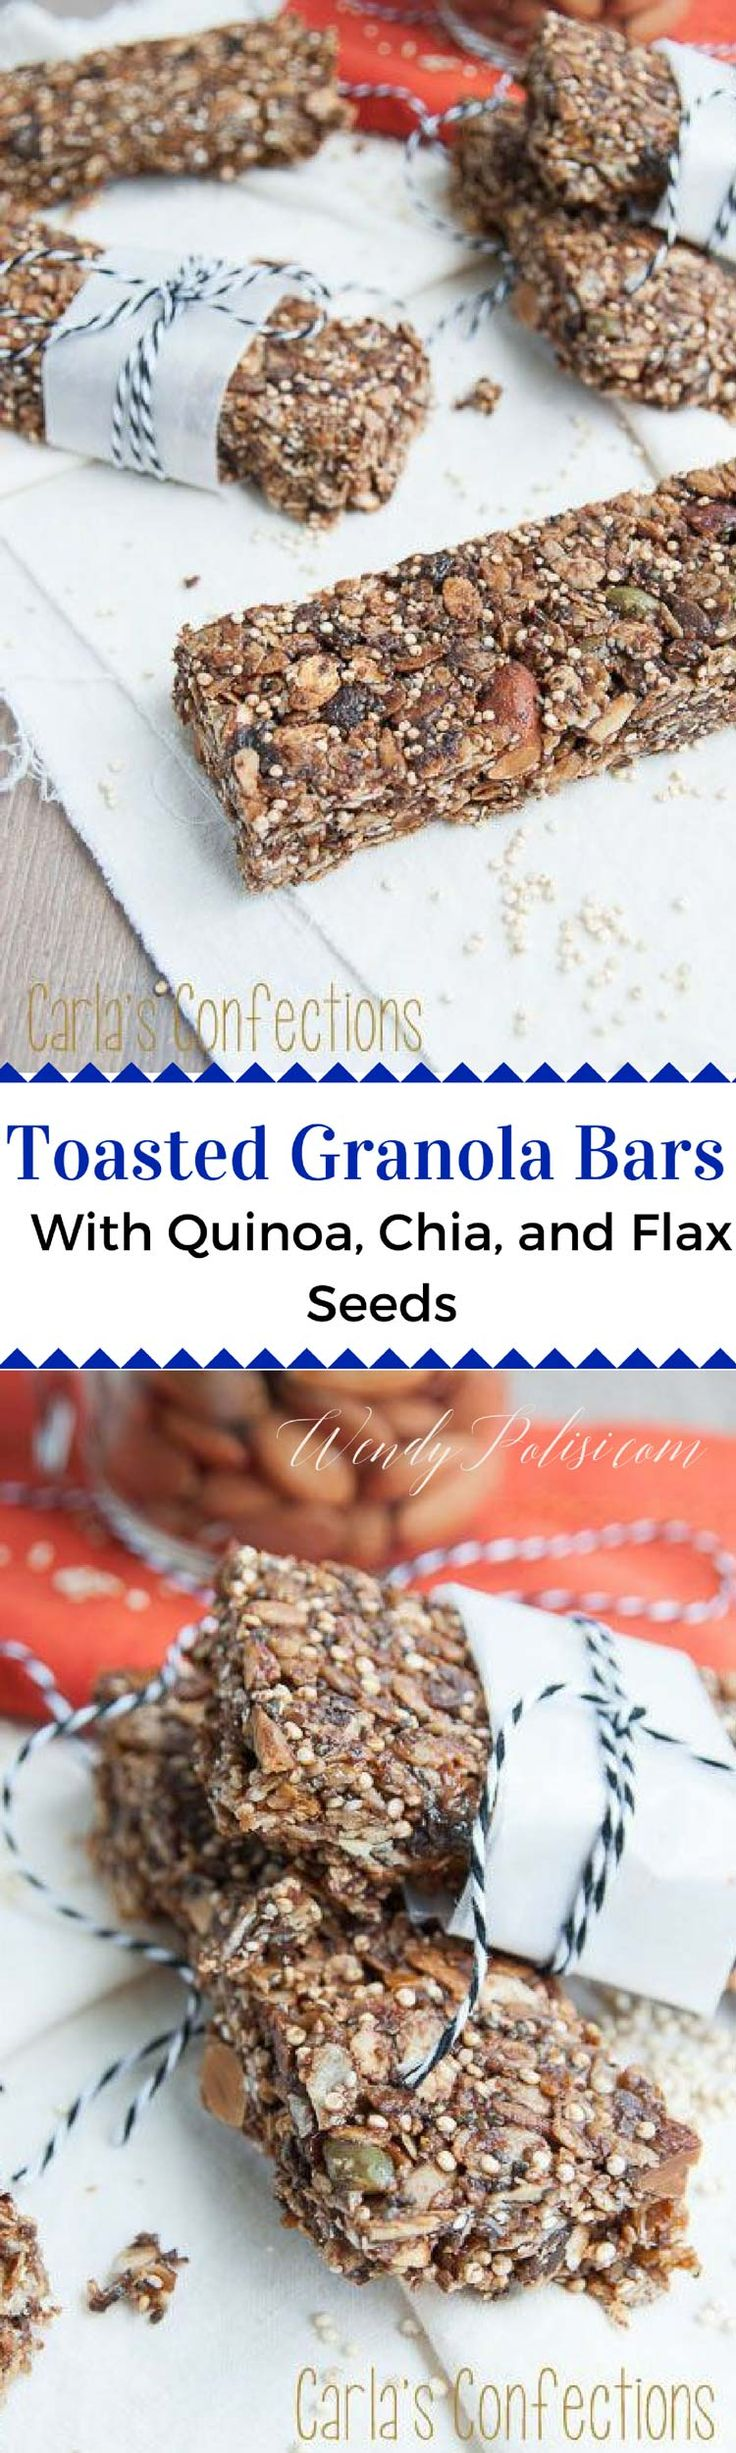 Toasted Granola Bars with Quinoa, Chia and Flax Seeds via @wendypolisi